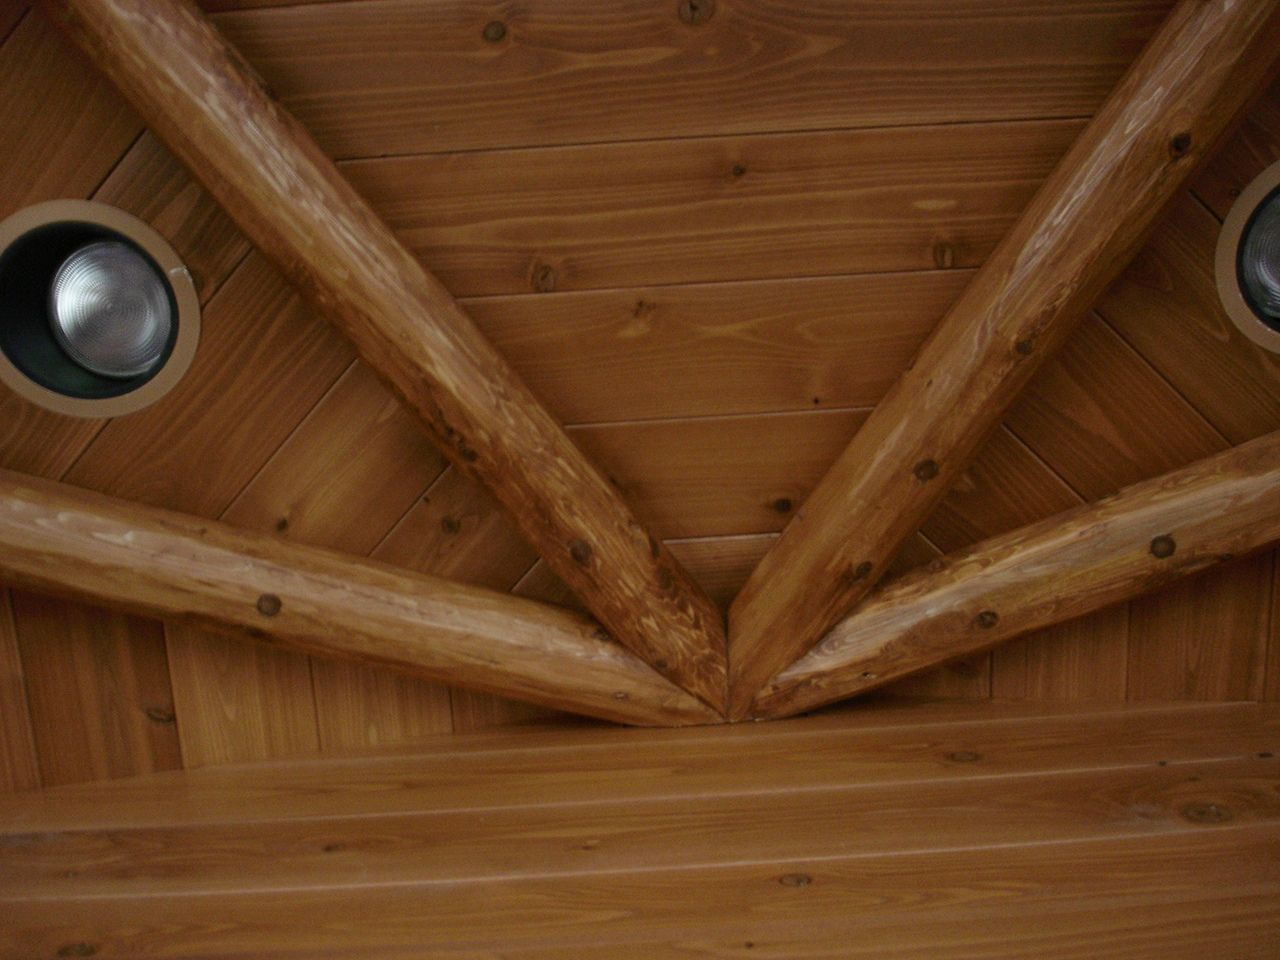 Tight Knot Lodgepole Pine Standard V Joint Carmello Endura Oil Tongue And Groove Panelling Rustic Retreat Rustic